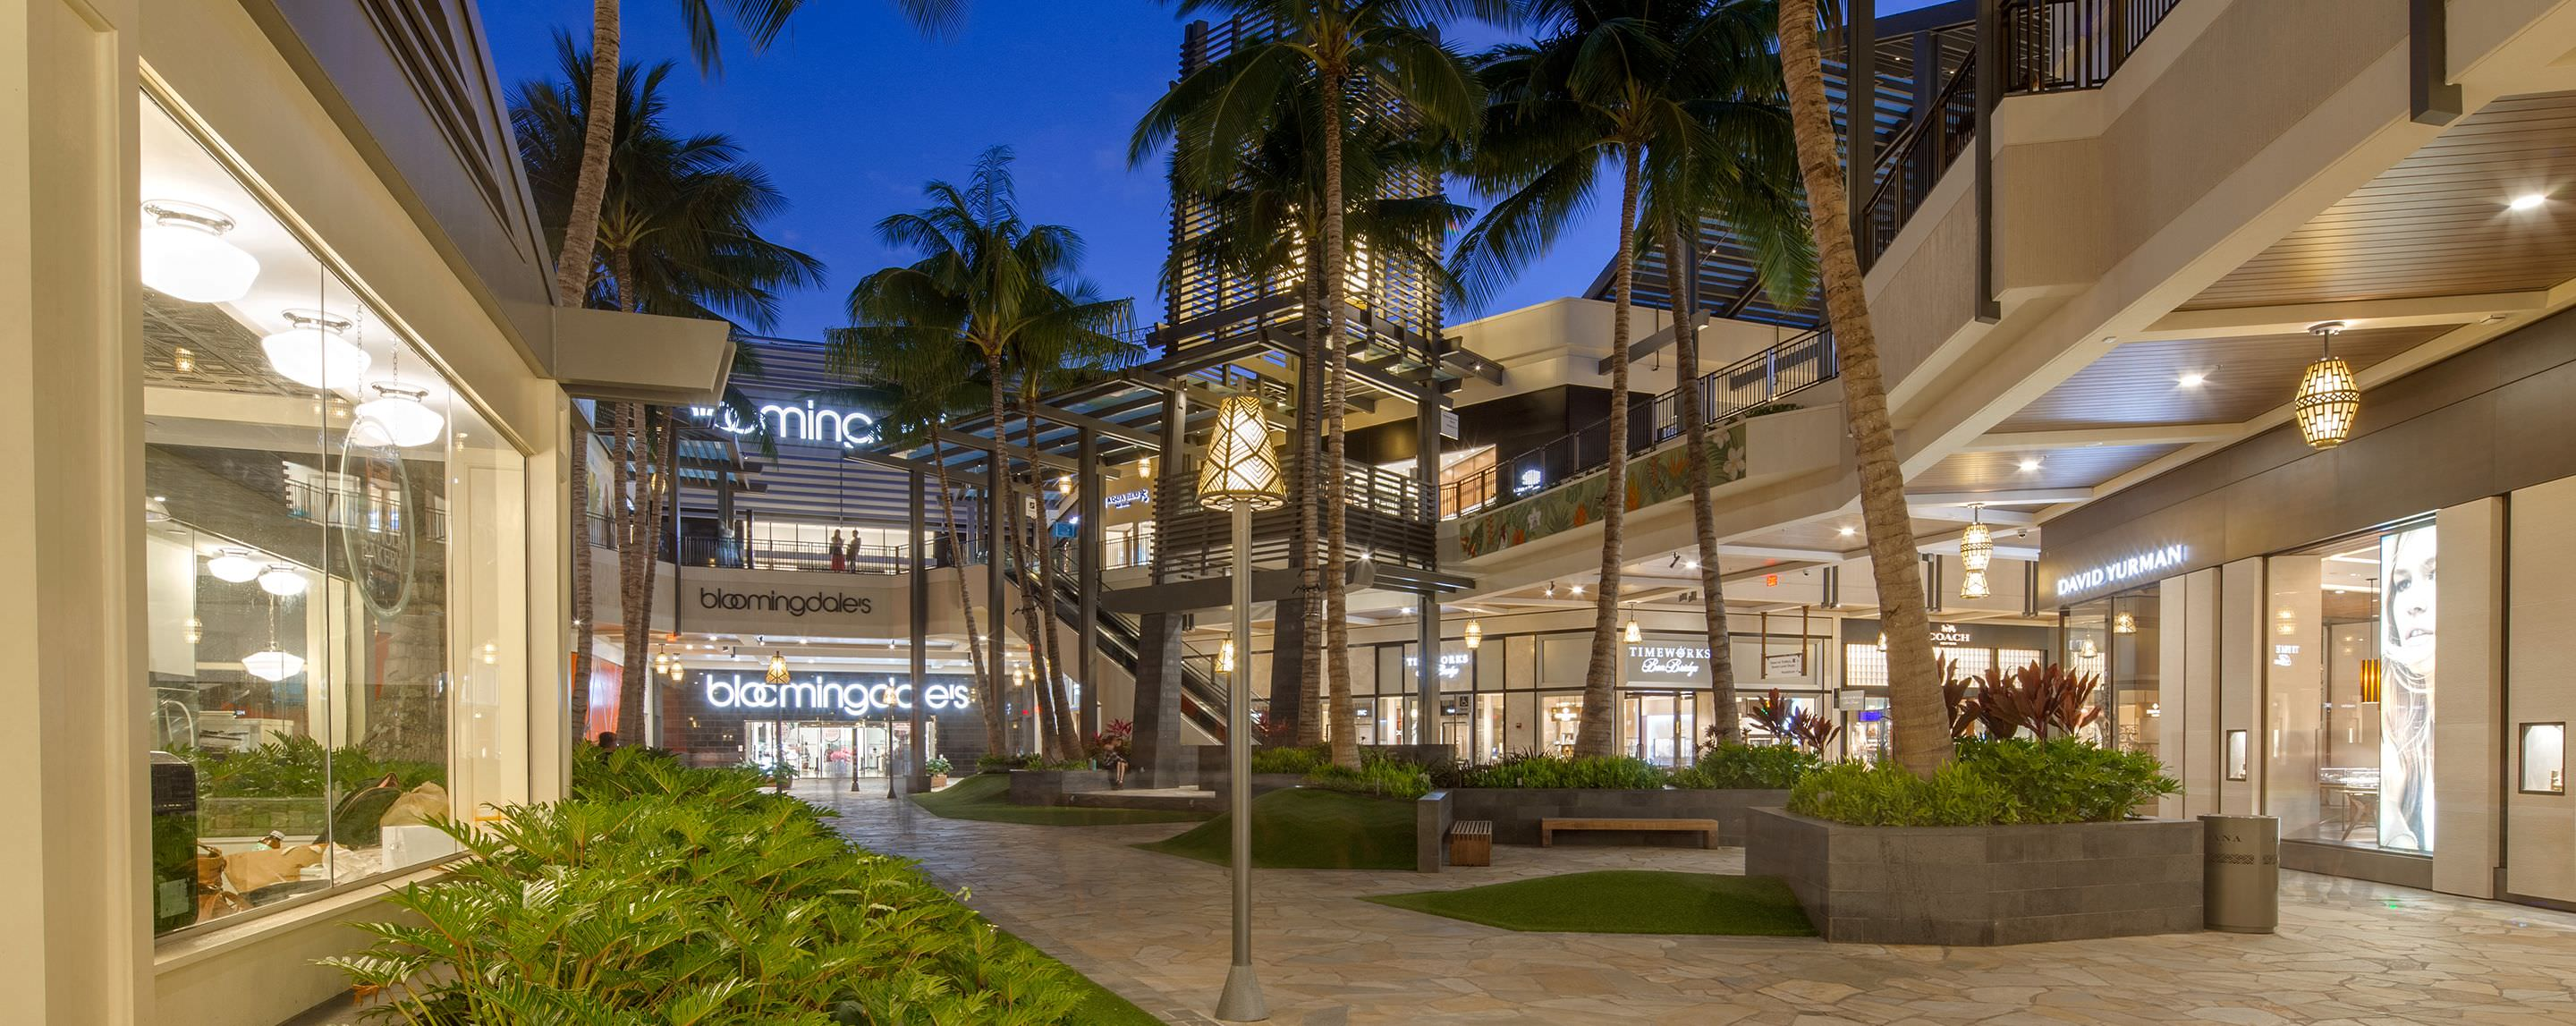 At dusk, an outdoor walkway of a GGP property is lined with lit up store fronts and palm trees.